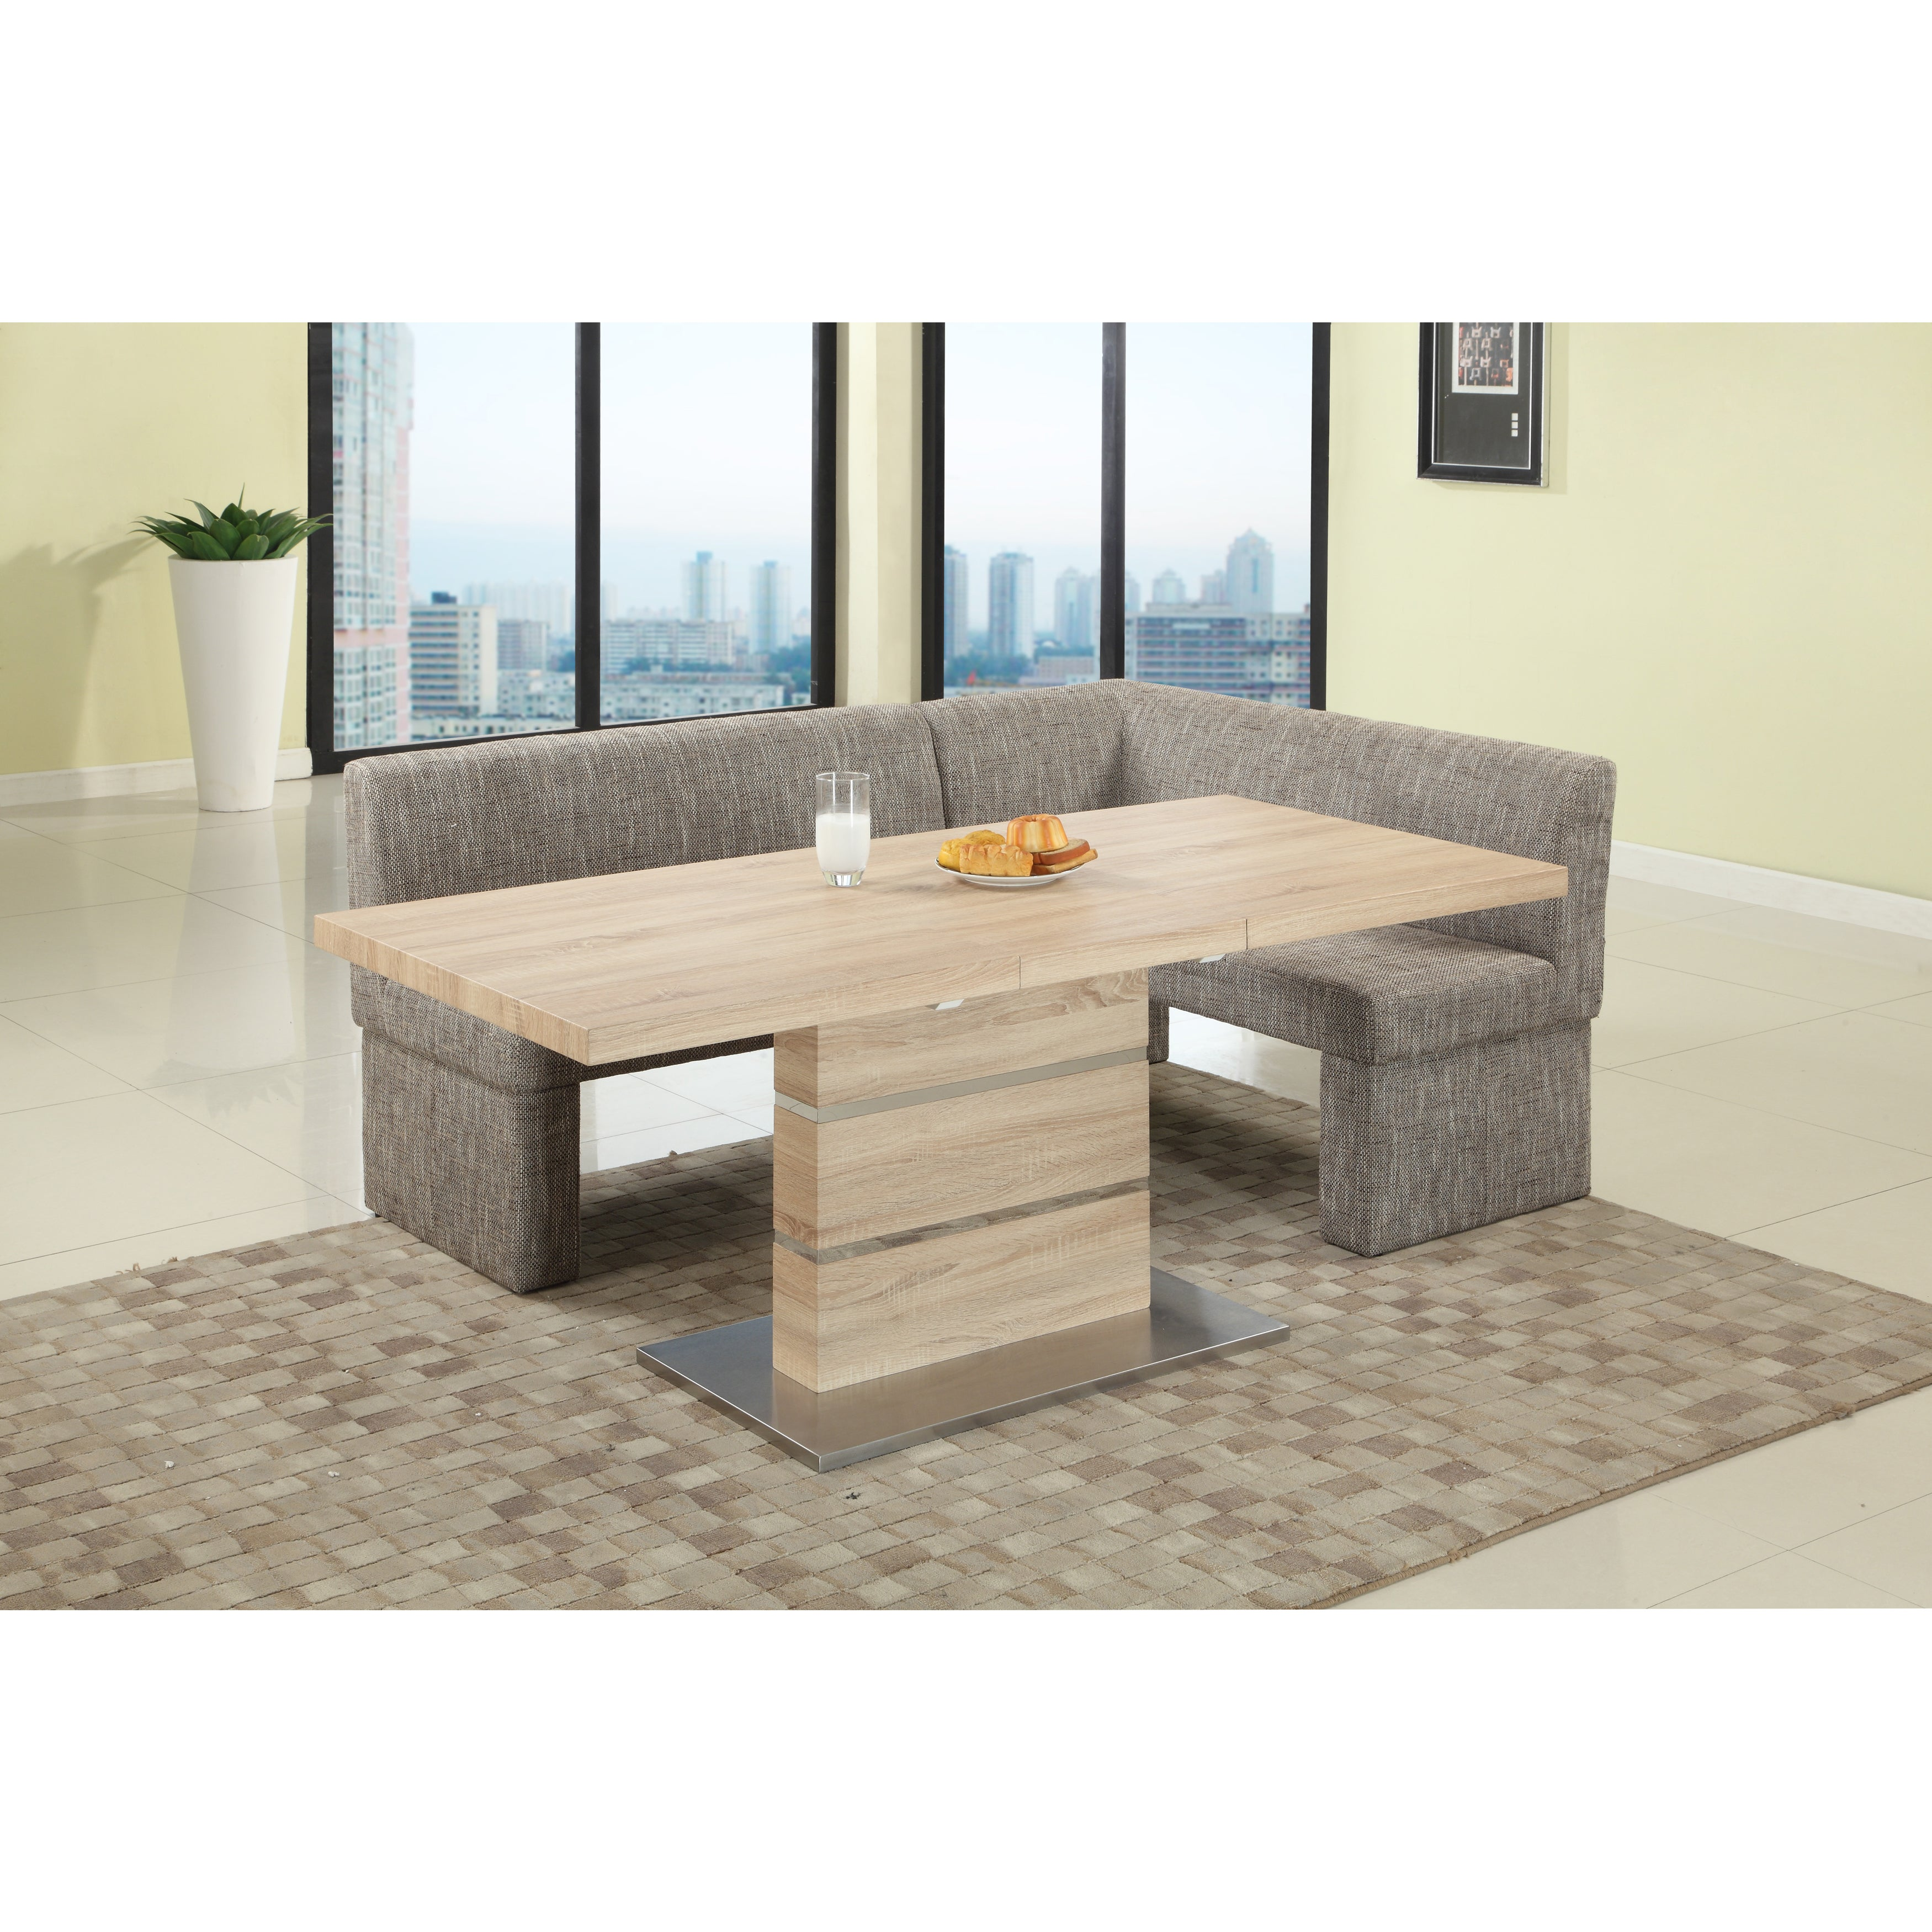 Superb Somette Liberty Light Oak 2 Piece Dining Set Caraccident5 Cool Chair Designs And Ideas Caraccident5Info